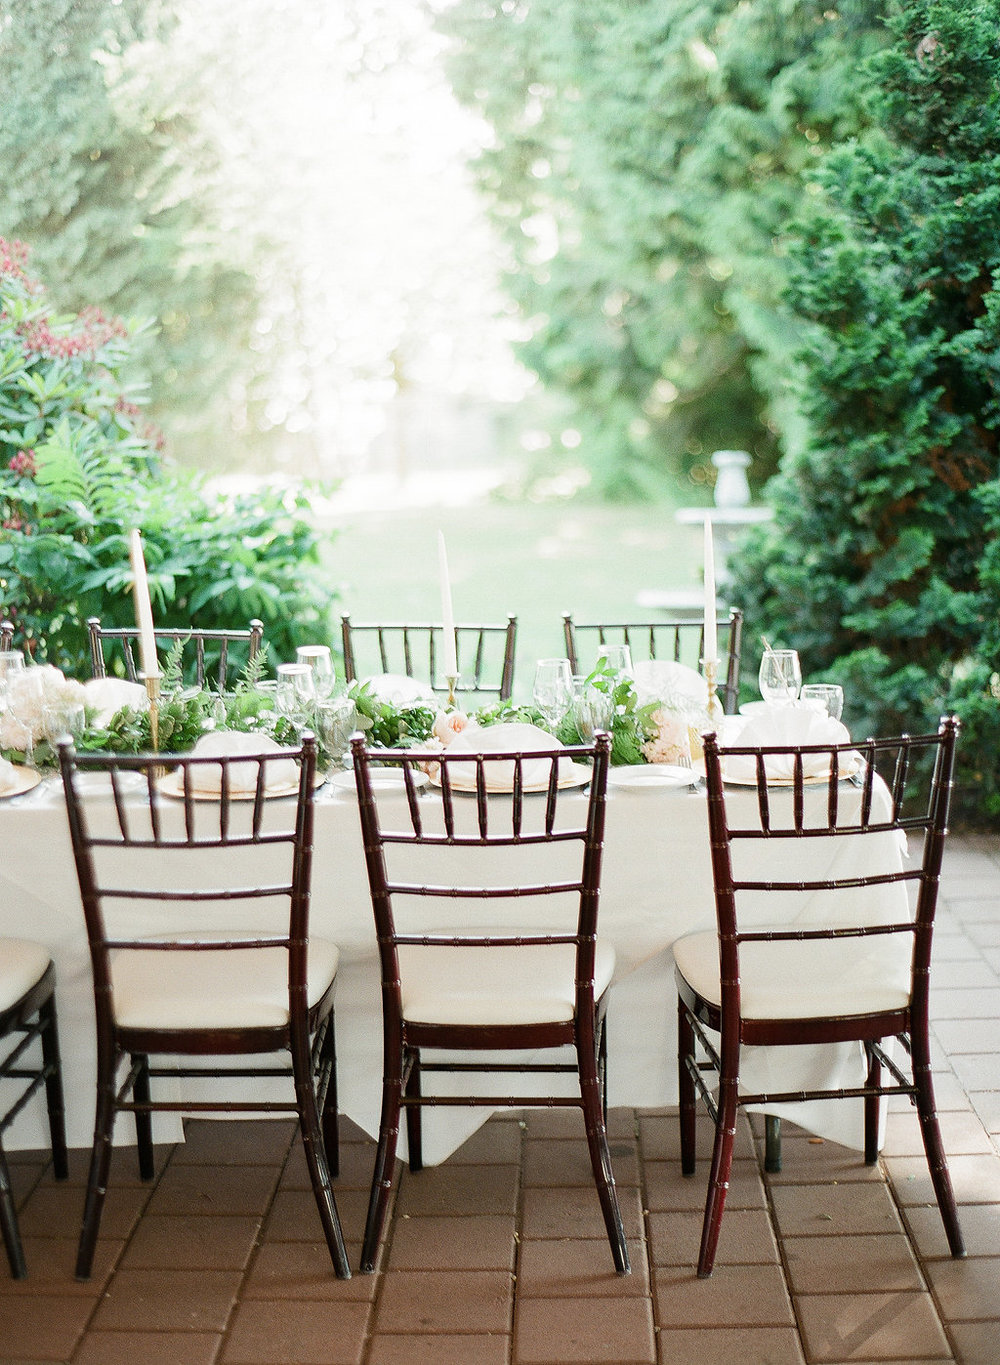 Brock-house-wedding-table-and-chairs-setup